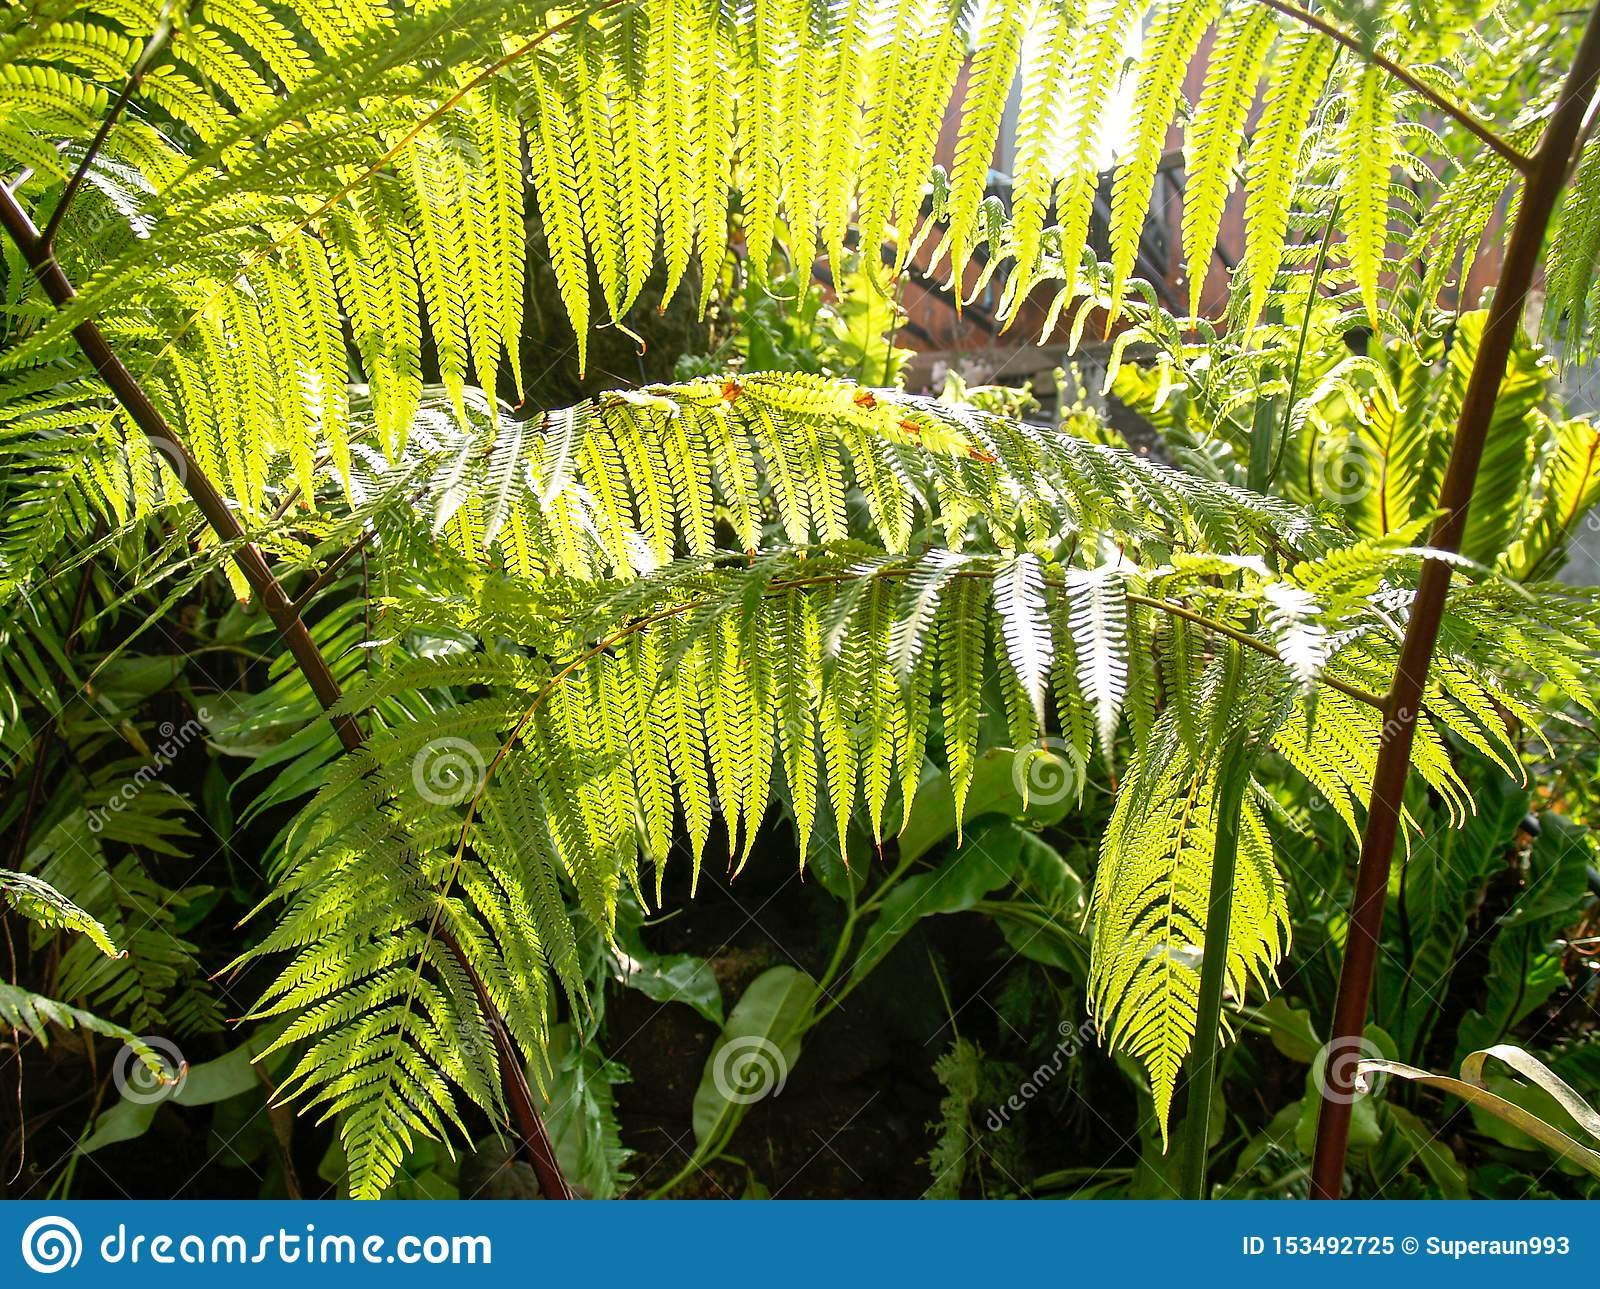 The ferns in the garden with sunlight are sent to the leaves